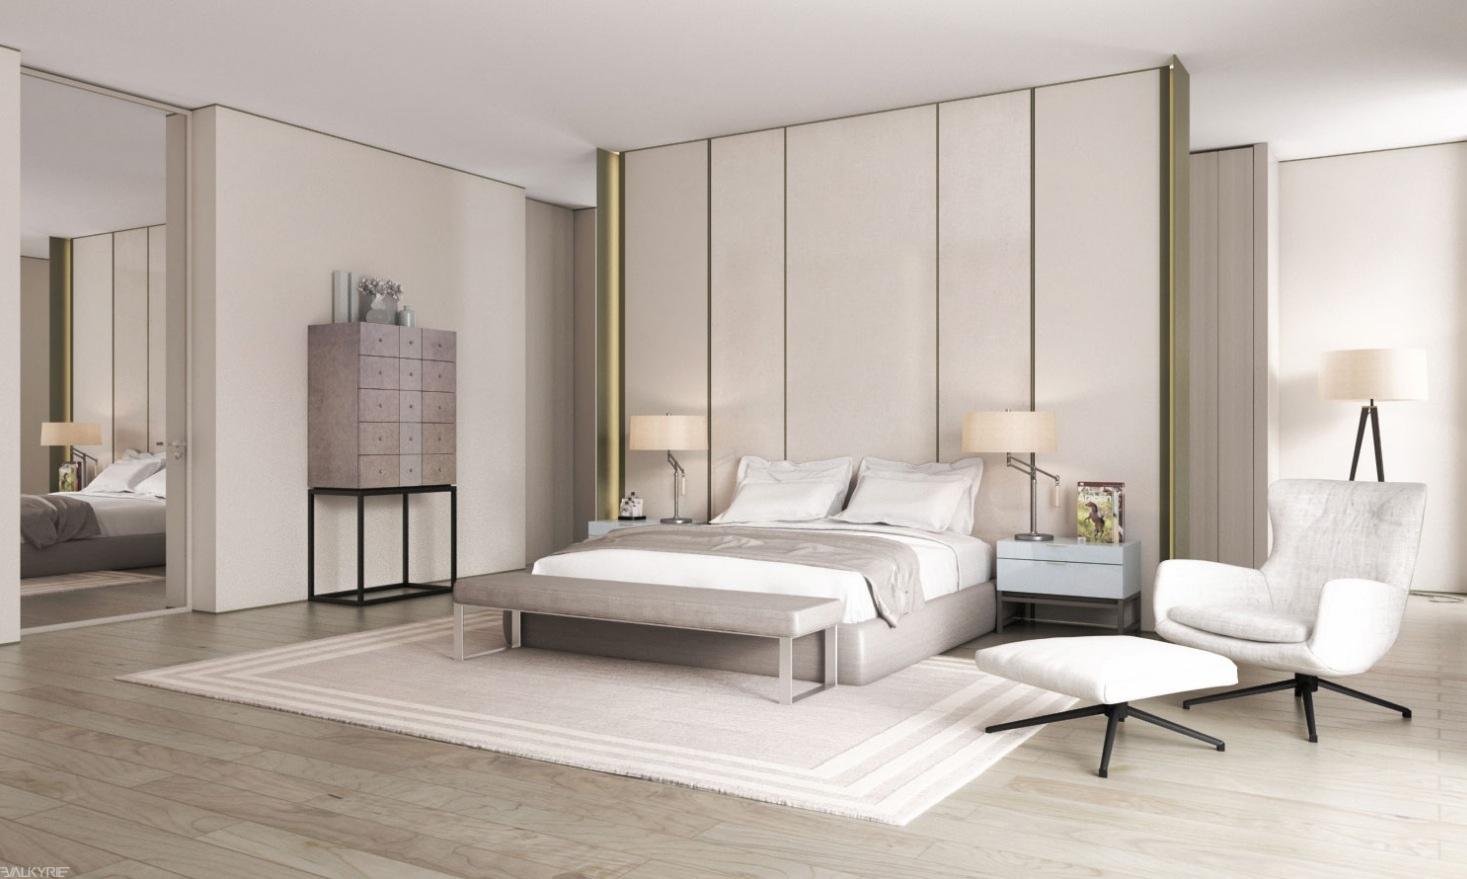 21 Cool Bedrooms for Clean and Simple Design Inspiration on Room Ideas Simple  id=82956